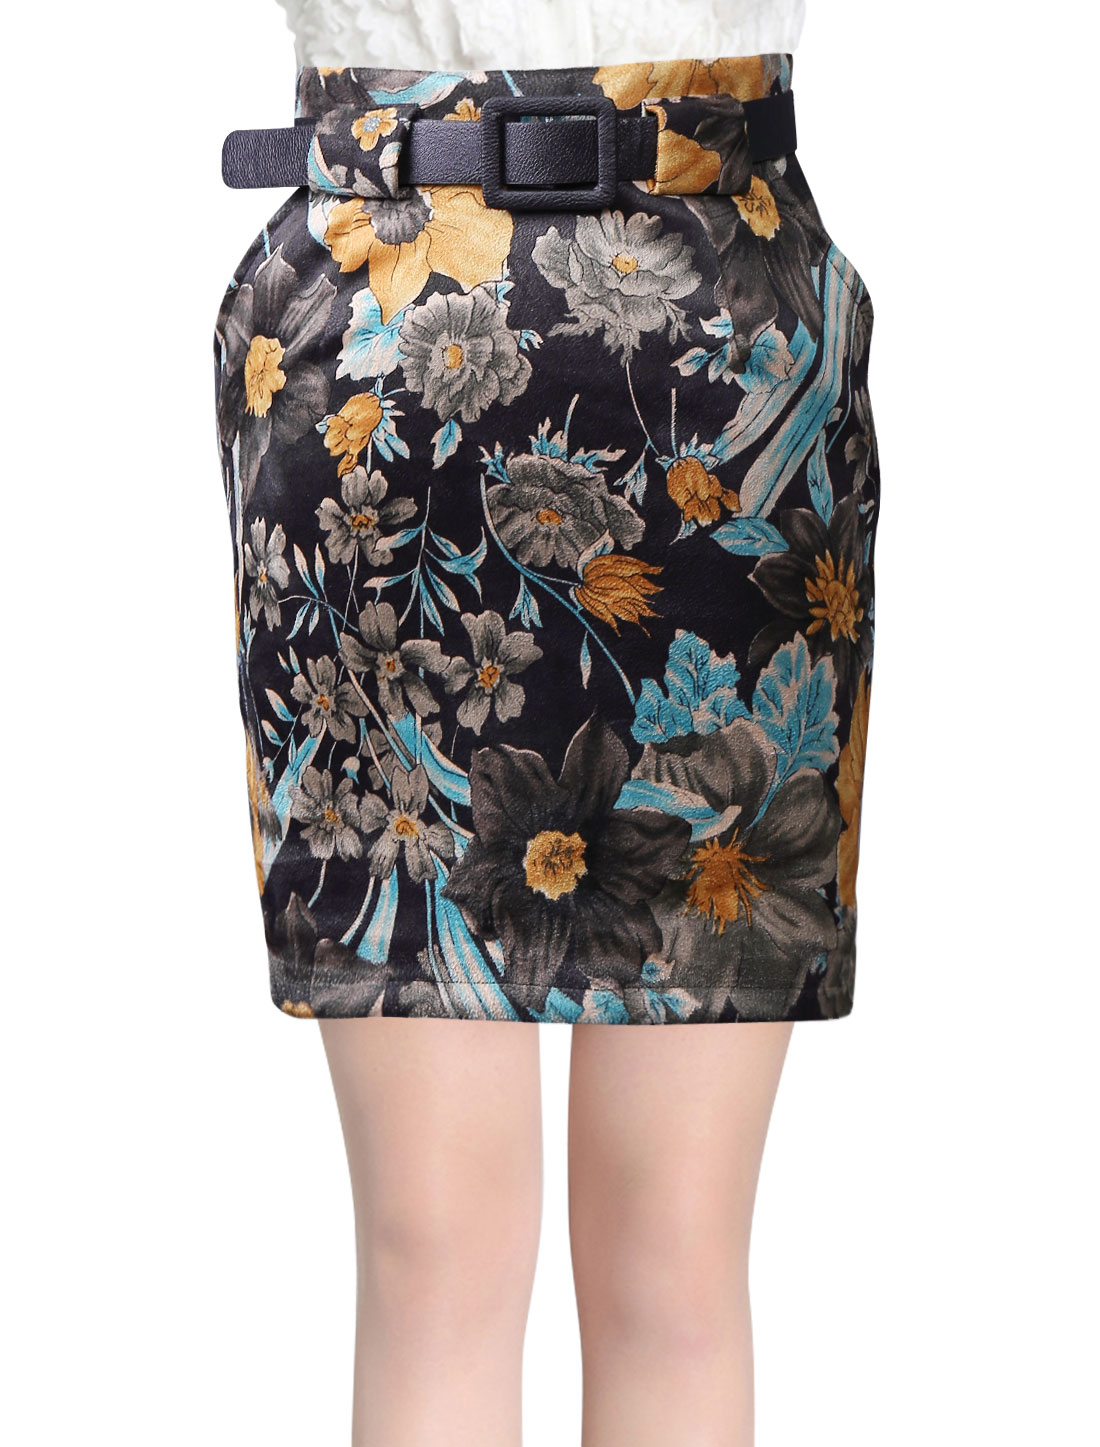 High Waist Floral Prints Sexy Skirt for Women w Belt Dark Brown S